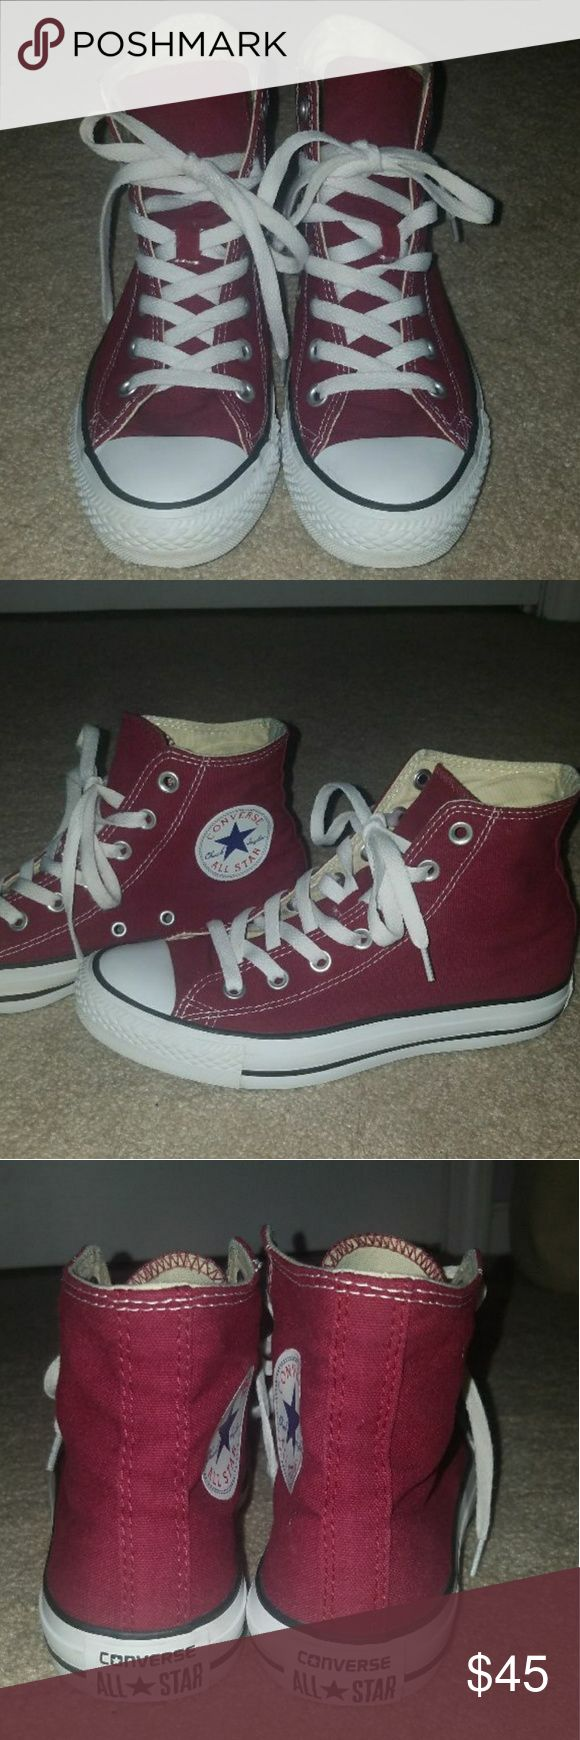 Maroon converse high tops Worn a few times They have been cleaned In great condition  Price is pretty firm since I might keep them Converse Shoes Sneakers